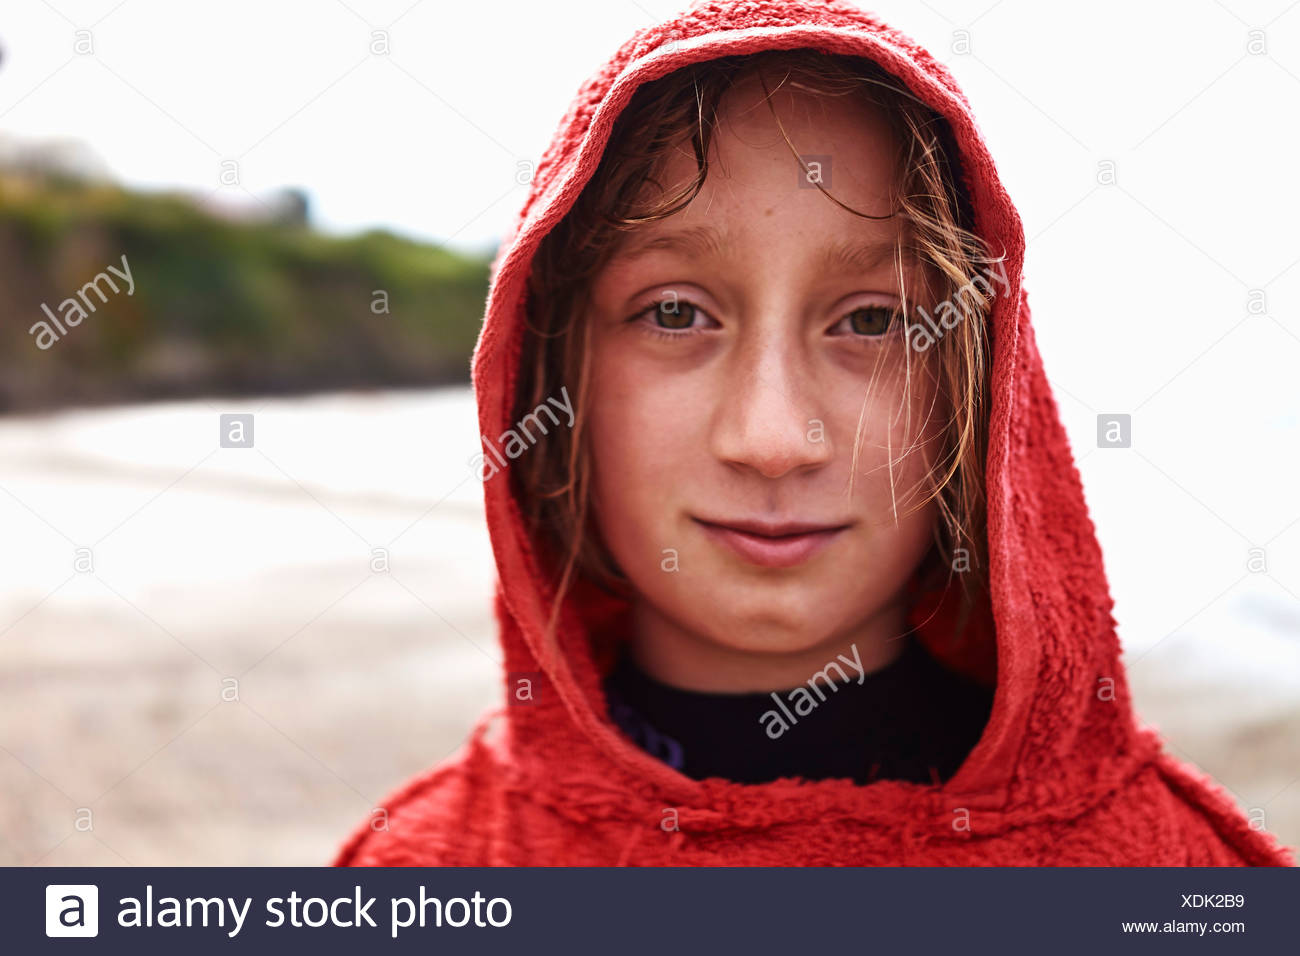 Portrait of Girl in red hooded top Photo Stock